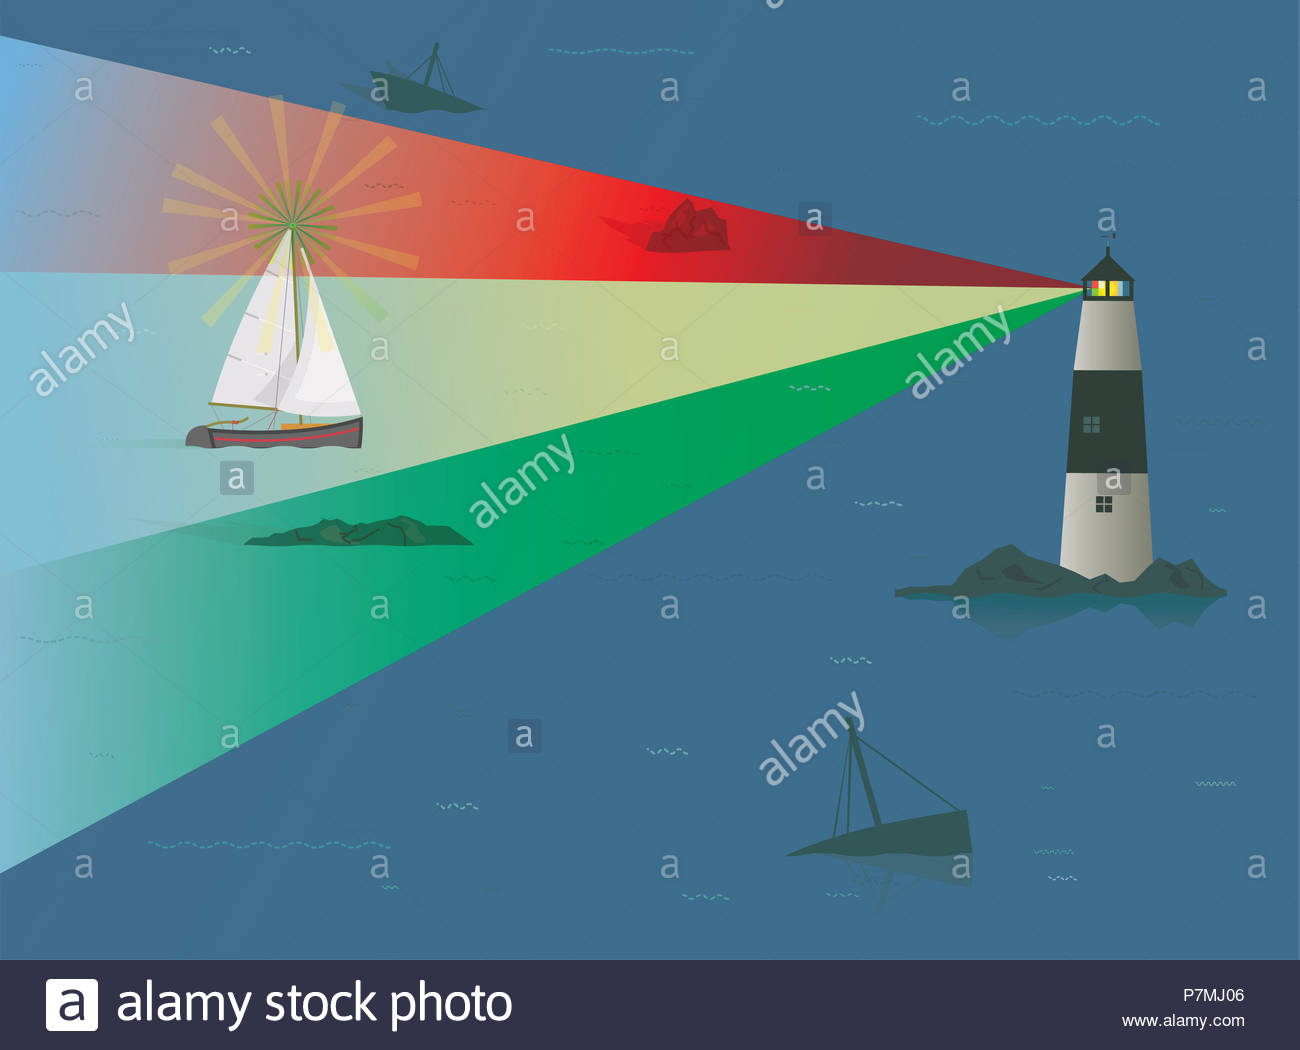 Sailboat being guided through Treacherous Rocks at Night by Beacon of Light from Lighthouse, Risk Concept, Skill, Experience, Navigation, Guiding Ligh - Stock Image